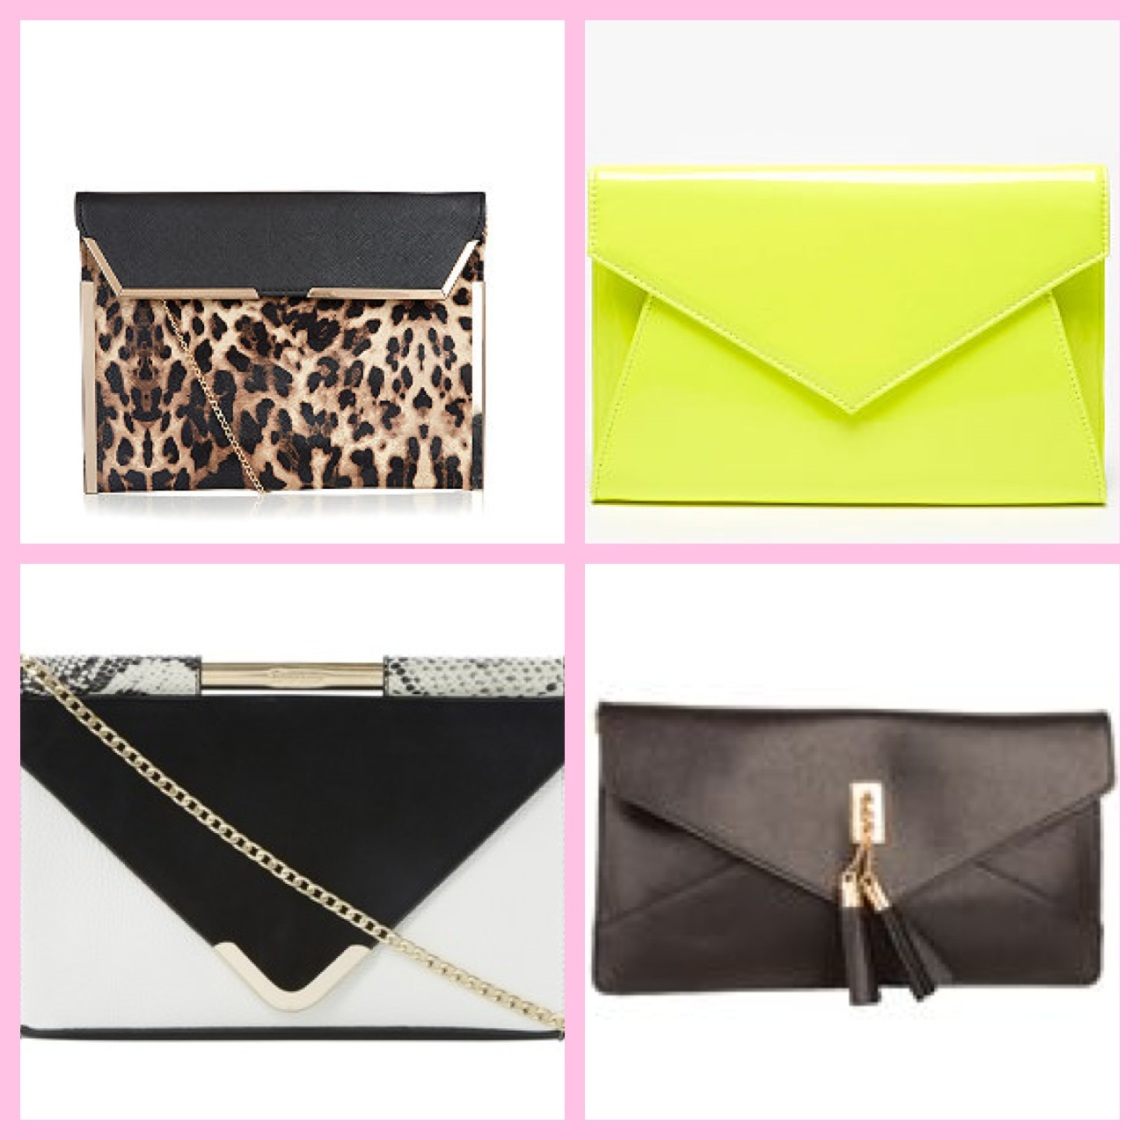 Clockwise from top left: New Look, Bank Fashion, Moda In Pelle, Dune